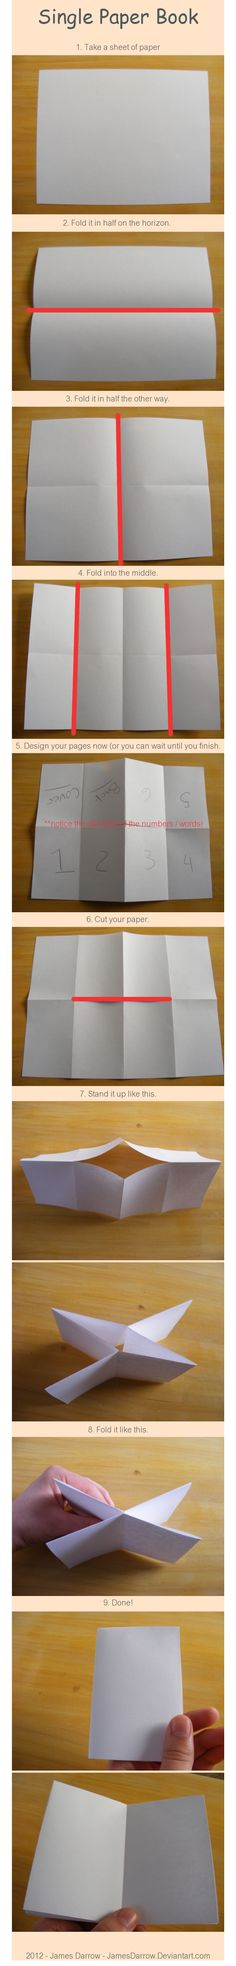 Single sheet of paper = mini book #diy #crafts #wedding www.BlueRainbowDesign.com